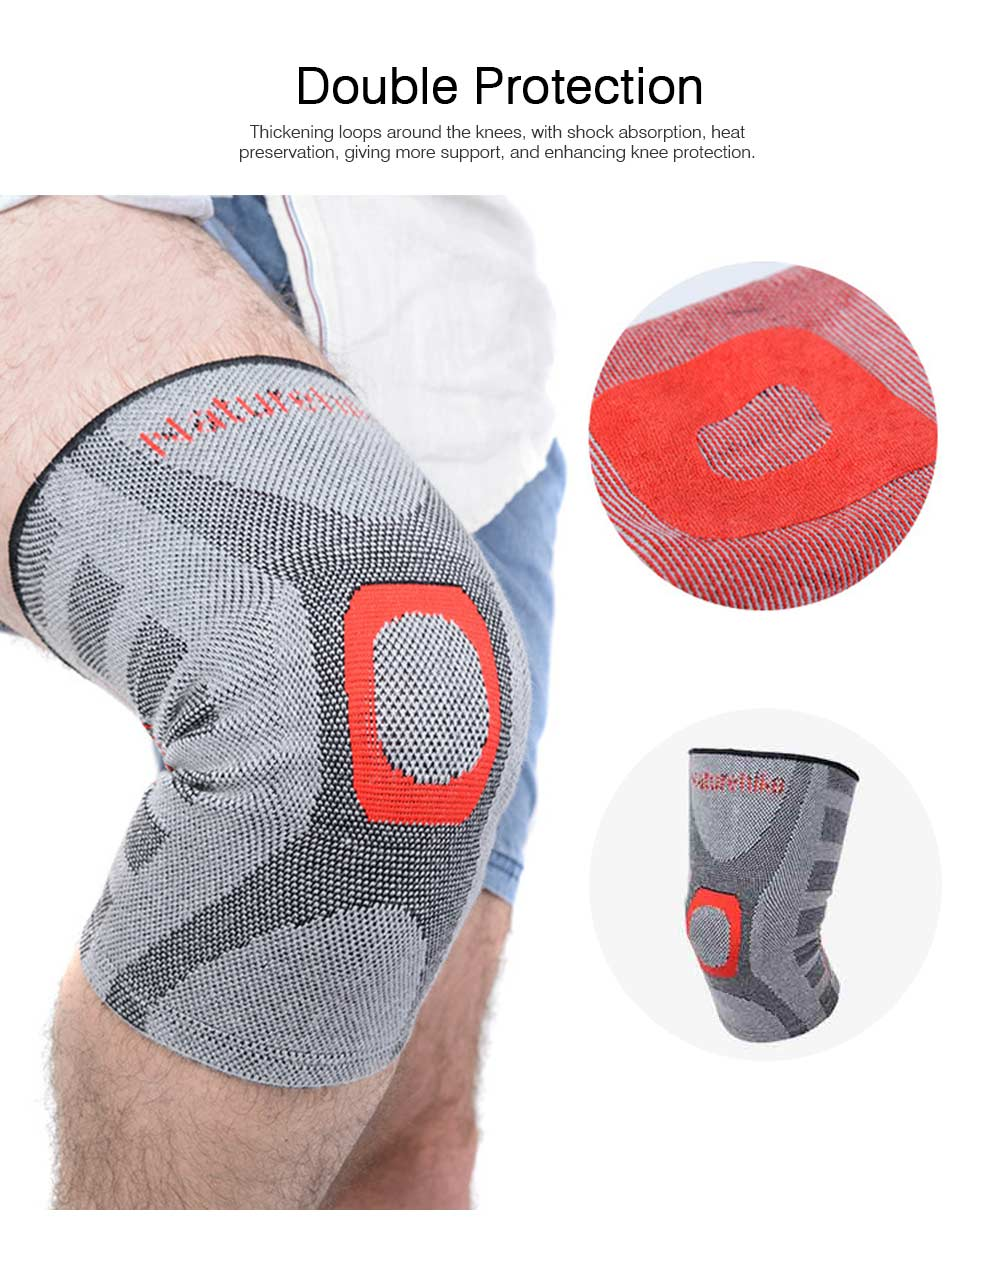 Anti-slip Sports Knee Pad Nylon High Elasticity Knee Support Guard Outdoor Mountaineering Cycling Fitness Breathable Stretch Knit Protector Gear 2